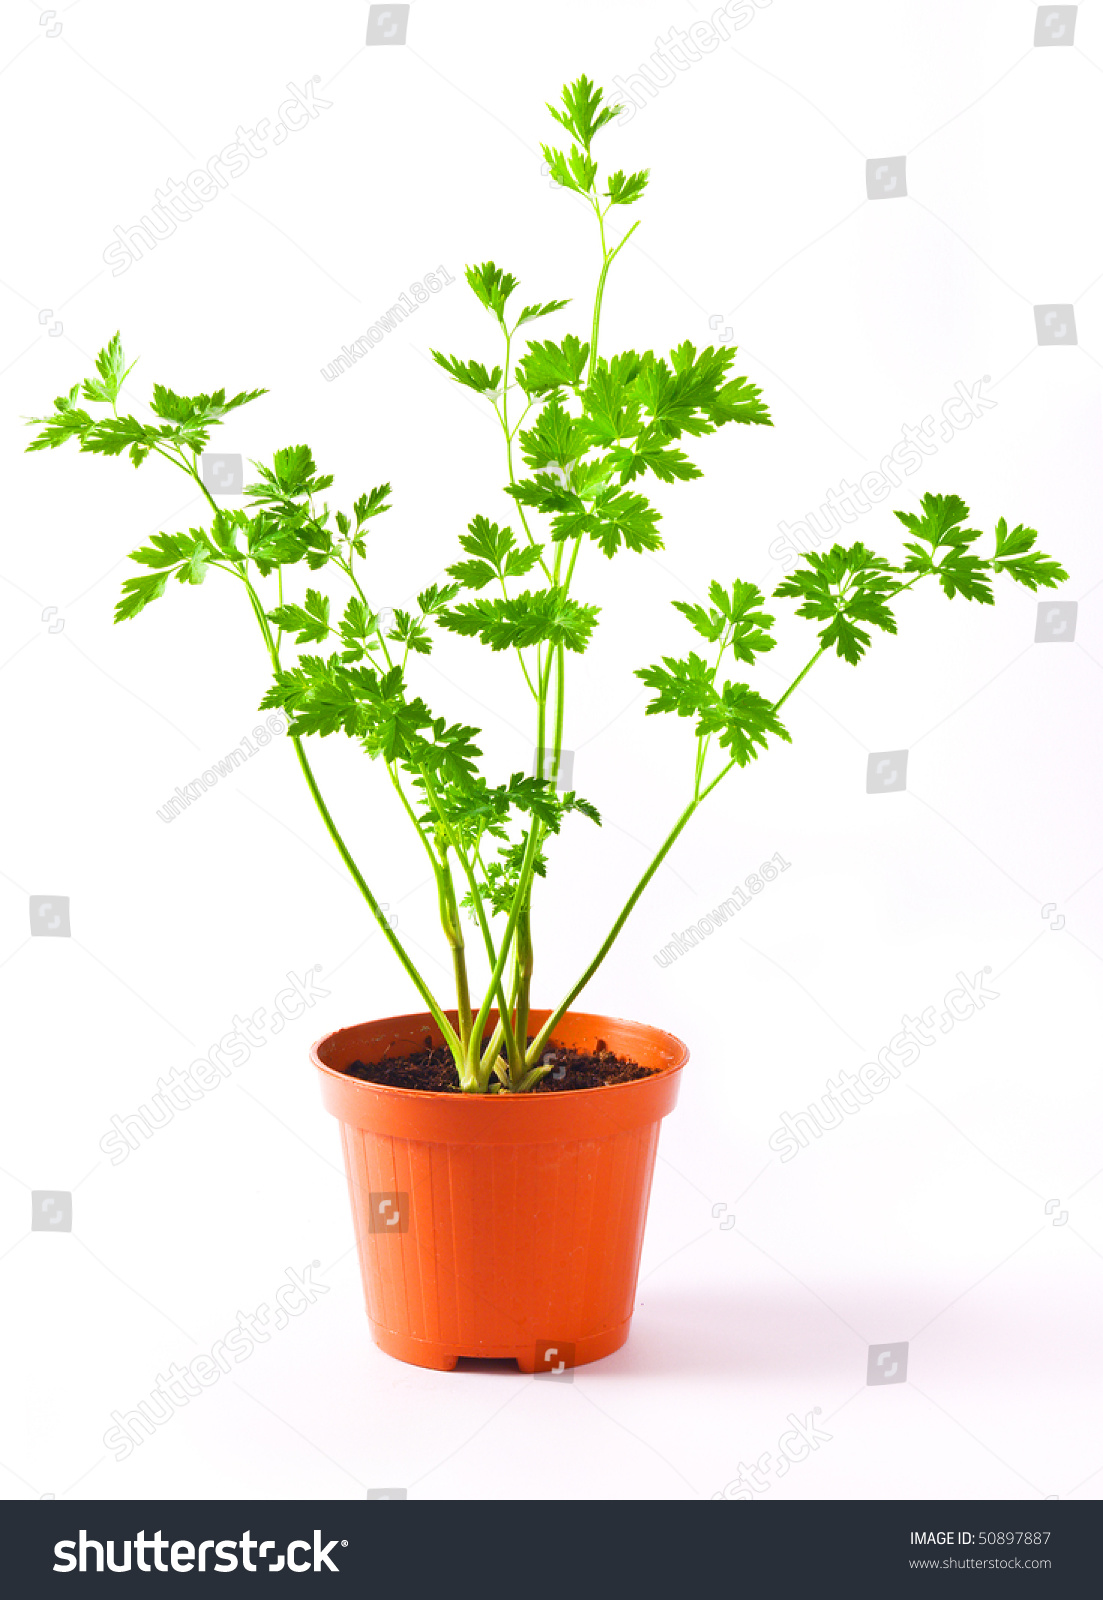 Parsley plant in a pot isolated on white background stock photo 50897887 shutterstock - Aromatic herbs pots multiple benefits ...